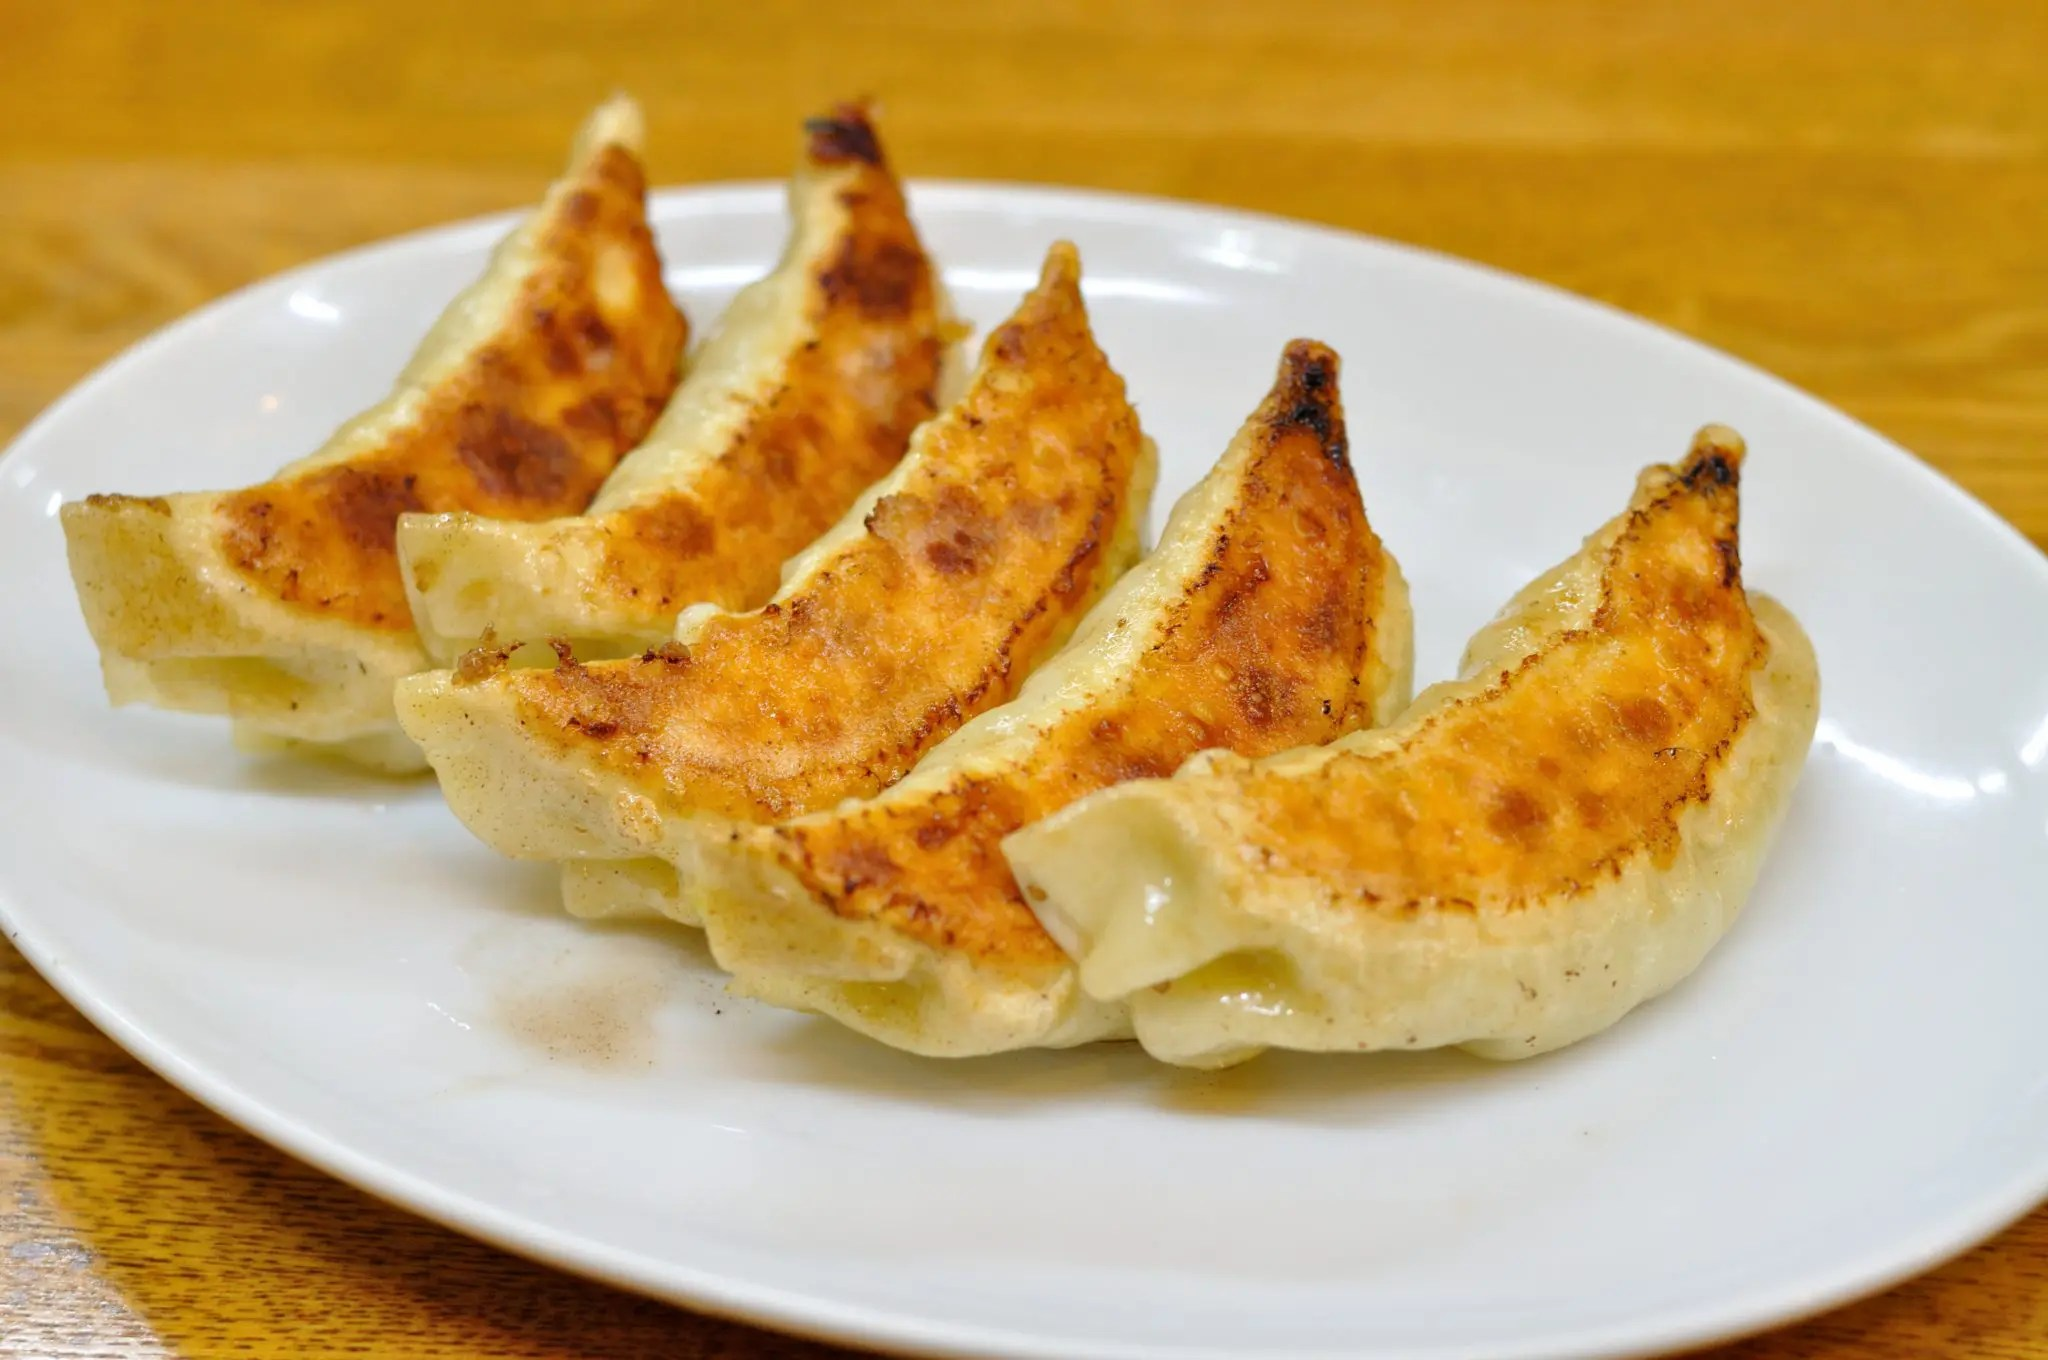 Sunshiny Y Like Chinese So It Too Far Sandwiches Were A Similar Logical Americans A Stretchto Put Peking How To Make Boston Style Chinese Dumplings On nice food Chinese Dumpling Sauce